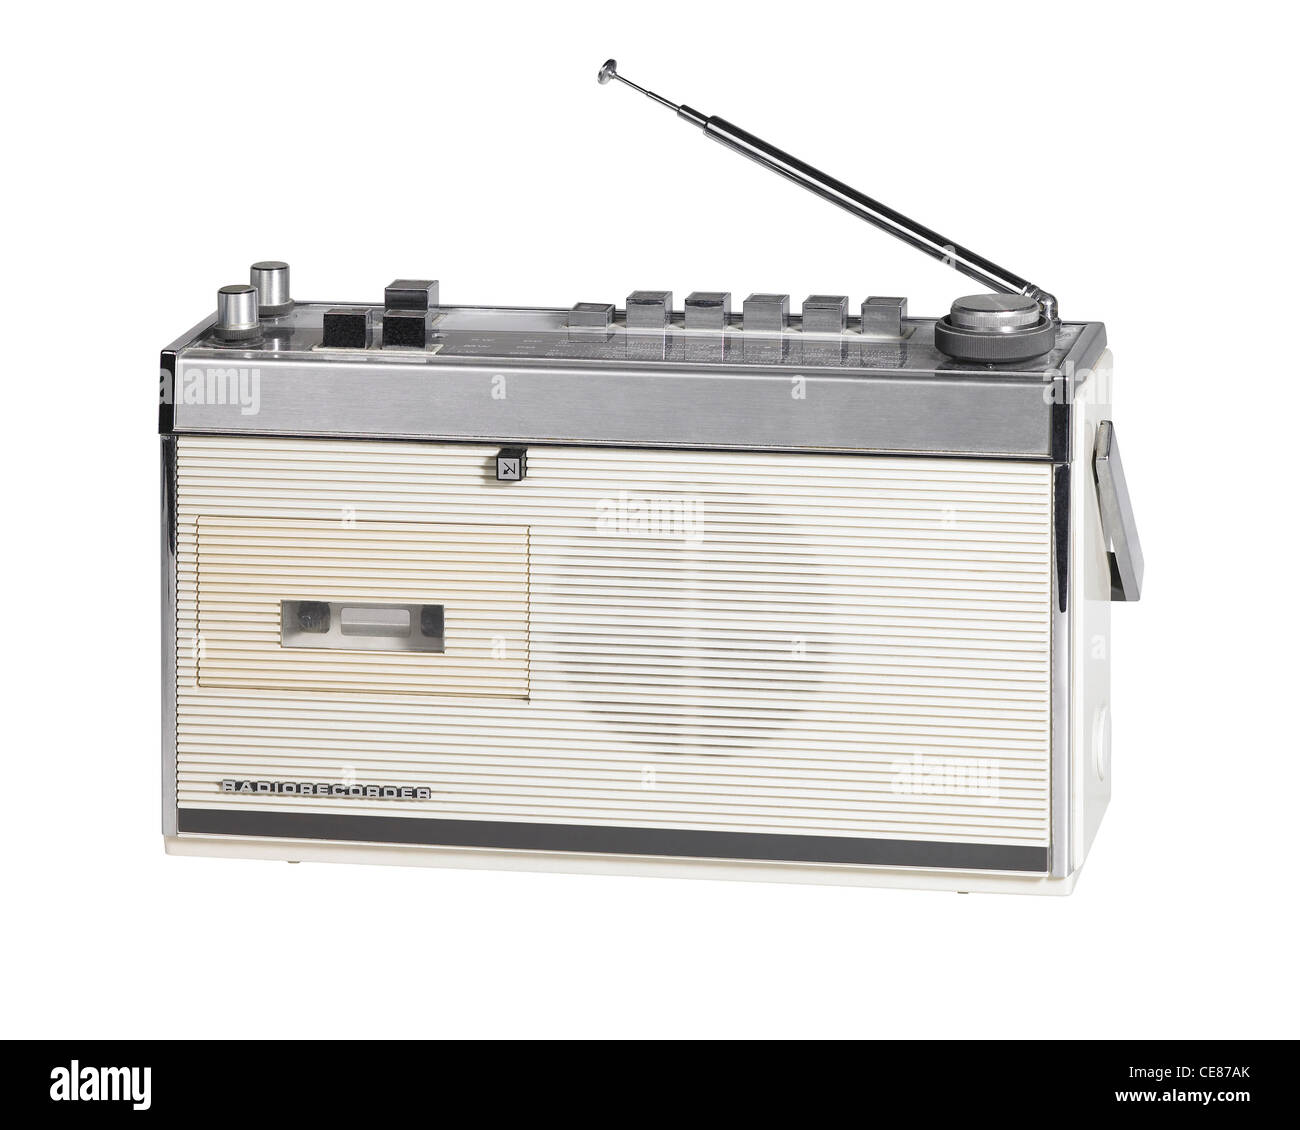 studio shot of a old nostalgic radio isolated on white with clipping path - Stock Image